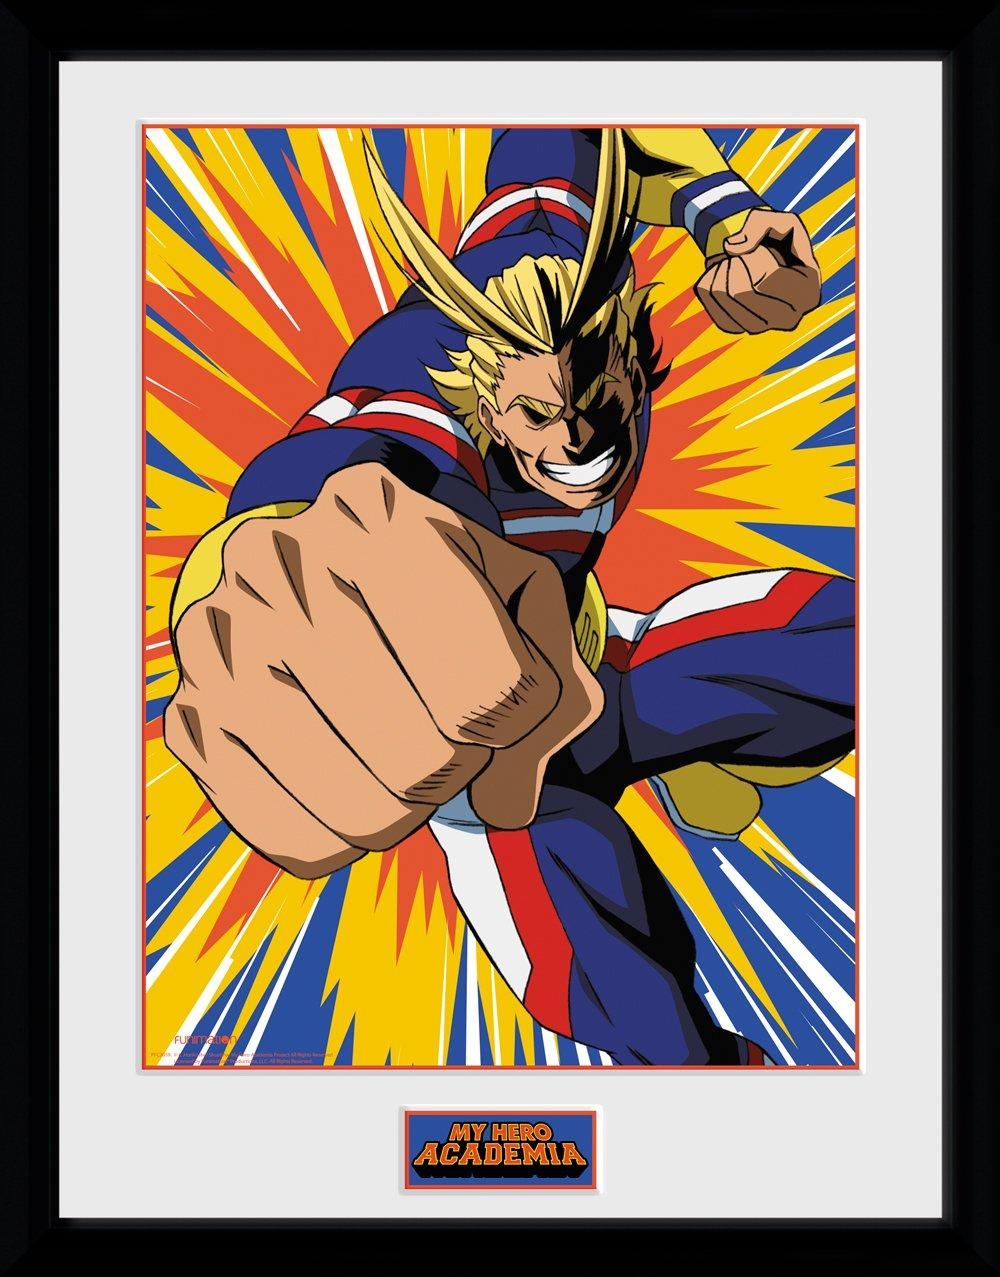 MY HERO ACADEMIA - Collector Print 30X40 - All Might Action